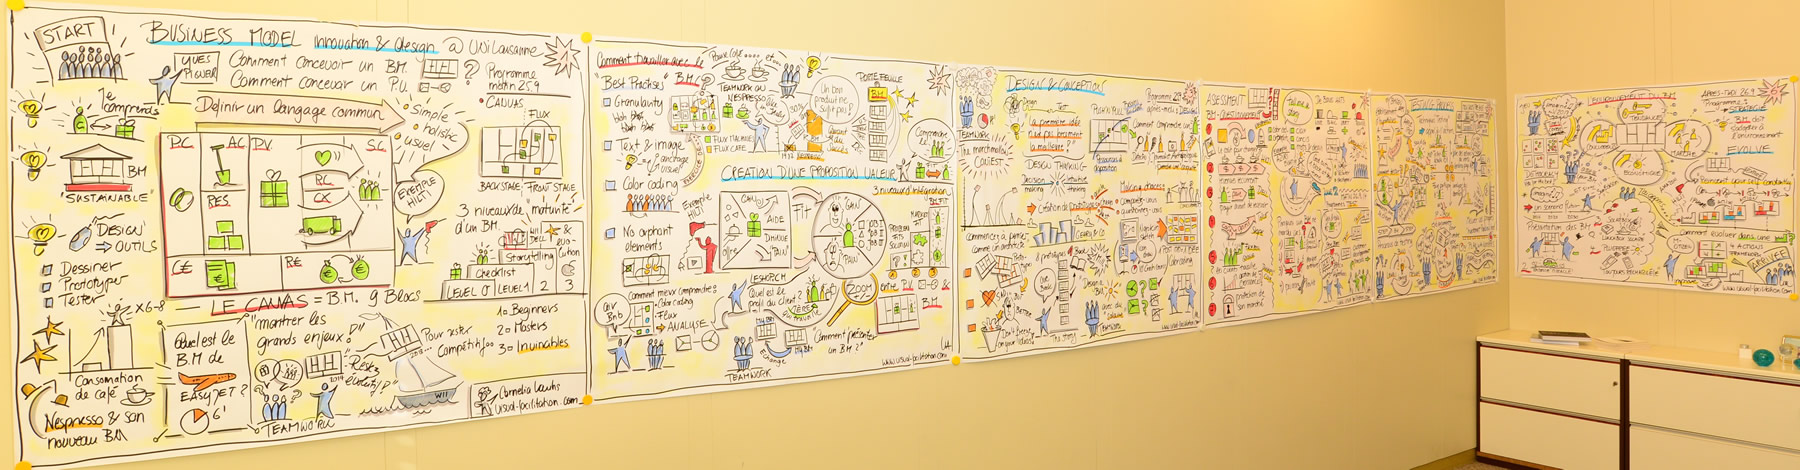 Visuelle Moderation und Graphic Recording